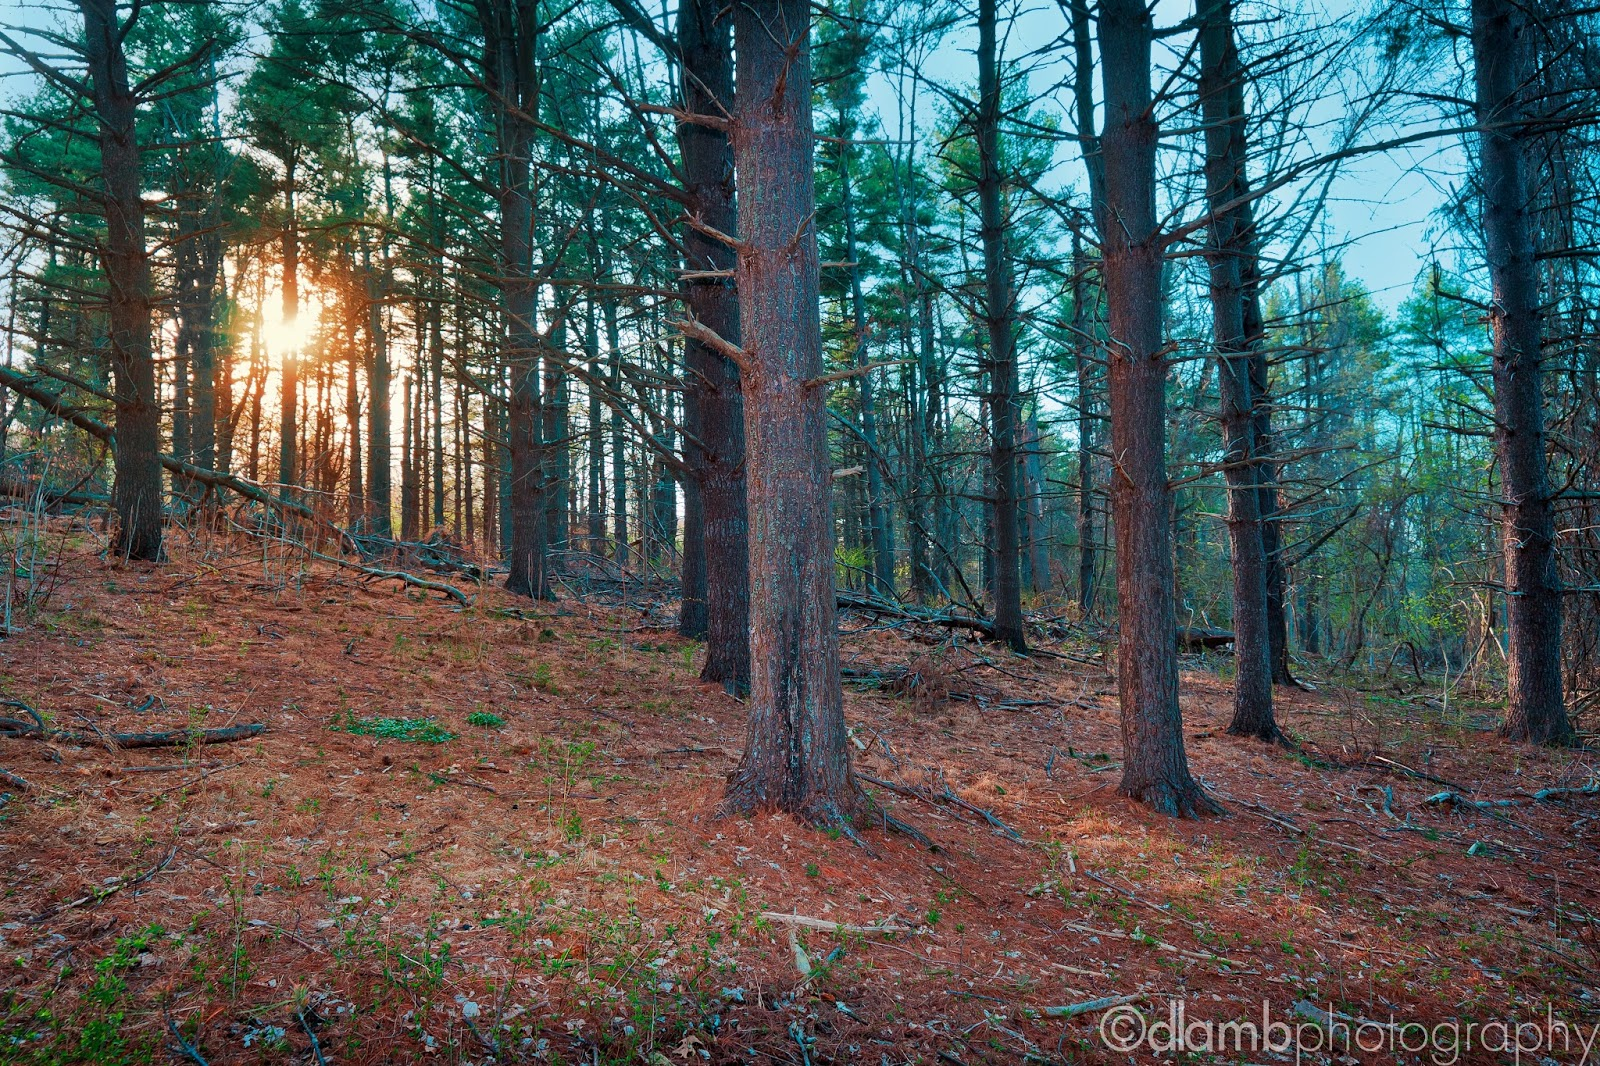 http://david-lamb.artistwebsites.com/featured/spring-sunshine-at-fort-washington-state-park-david-lamb.html